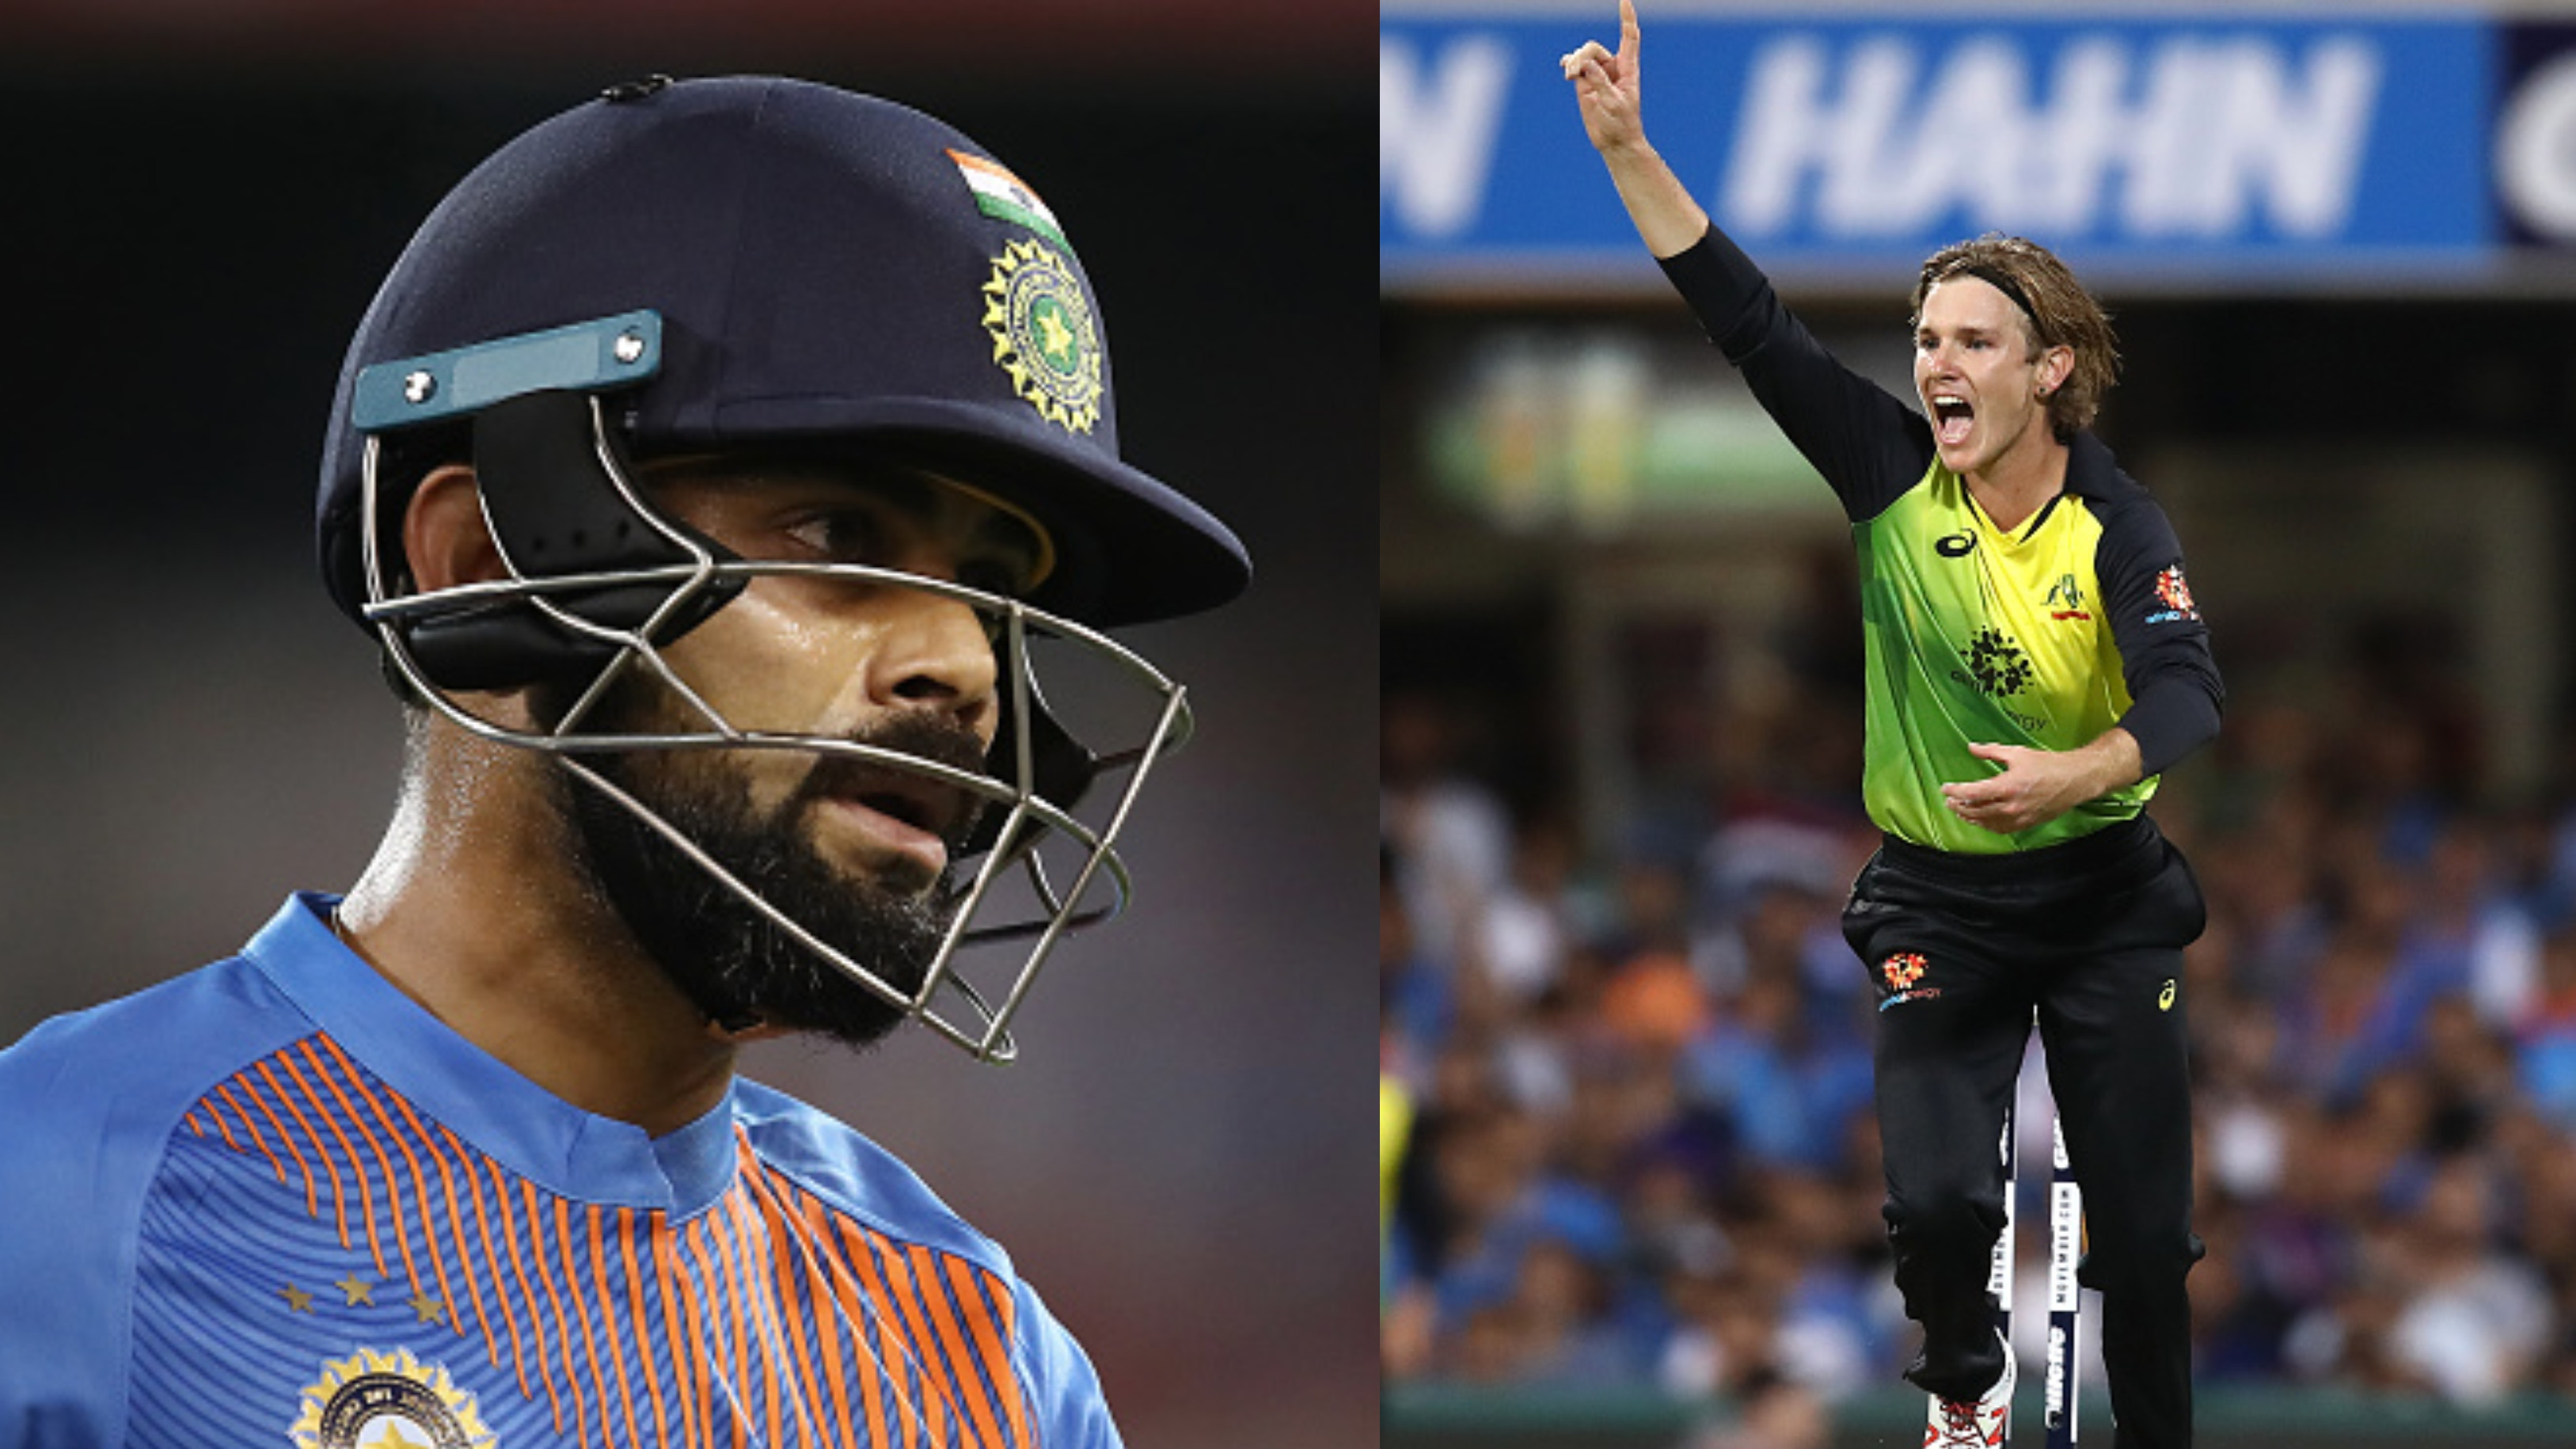 AUS v IND 2018-19: Adam Zampa 'stoked' after turning Virat Kohli's return into a nightmare